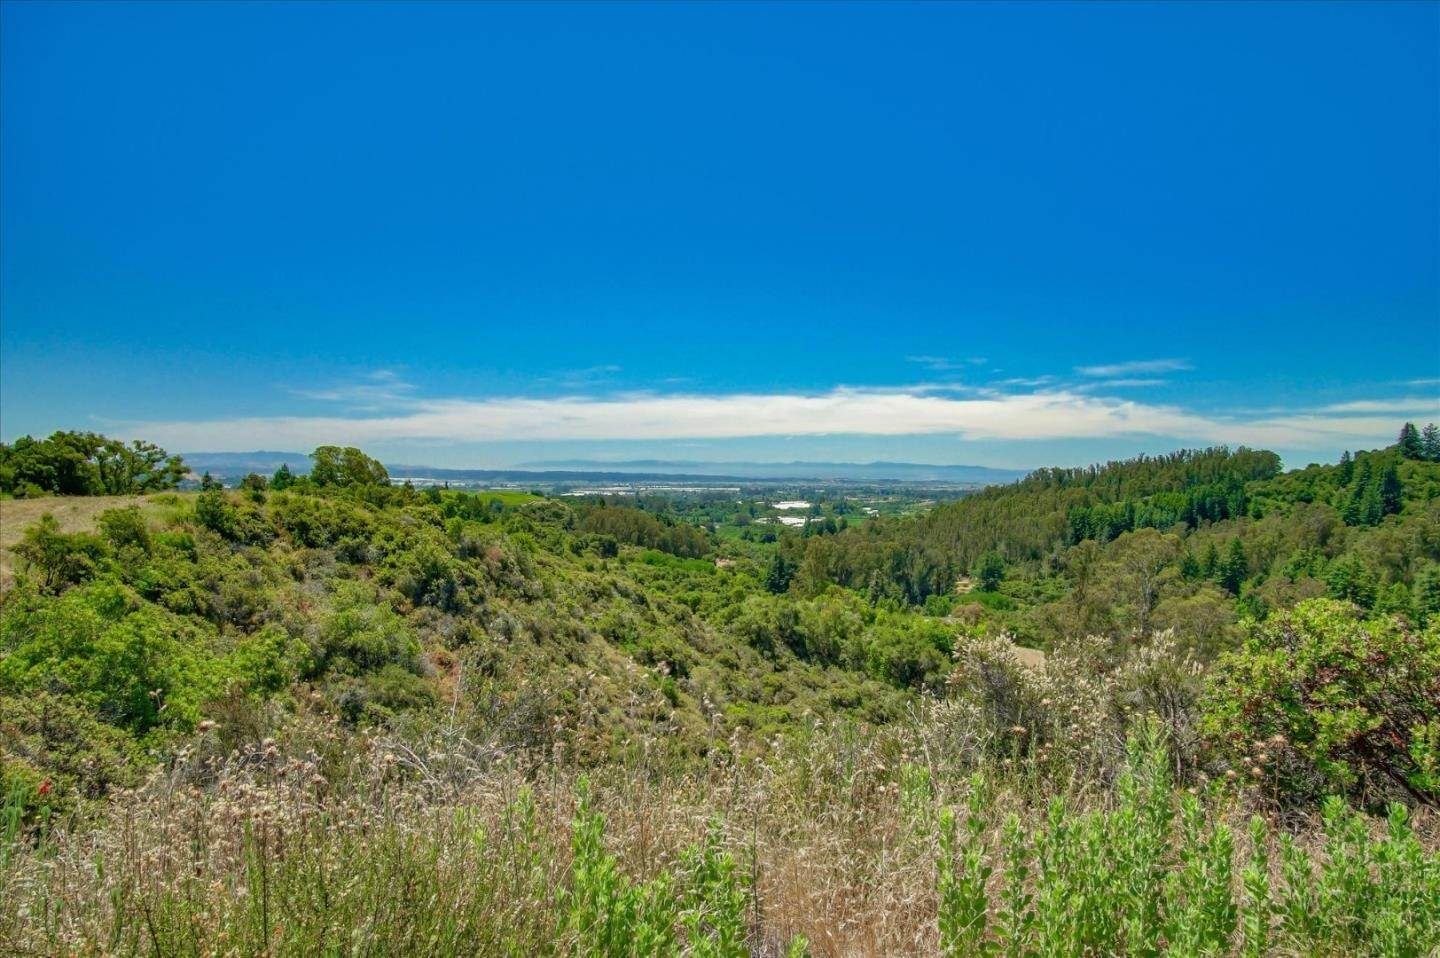 Land for Sale at Lot 11 Apple Valley Lane Corralitos, California 95076 United States